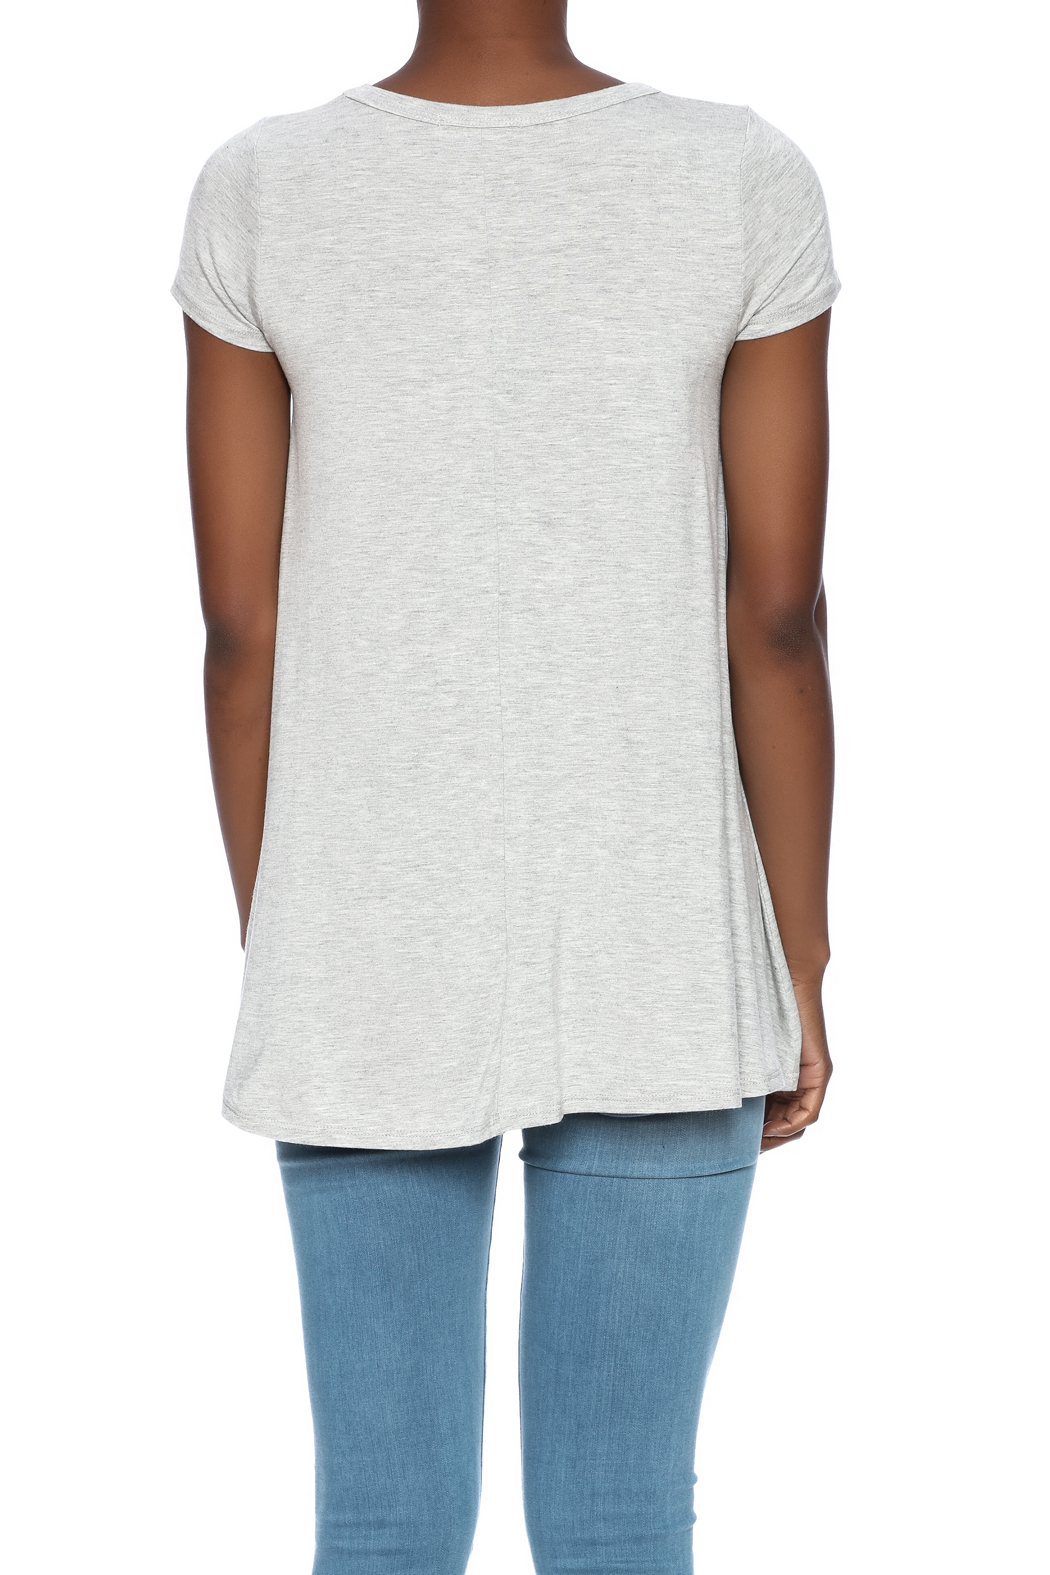 Judith March Boat Hair Tee - Back Cropped Image